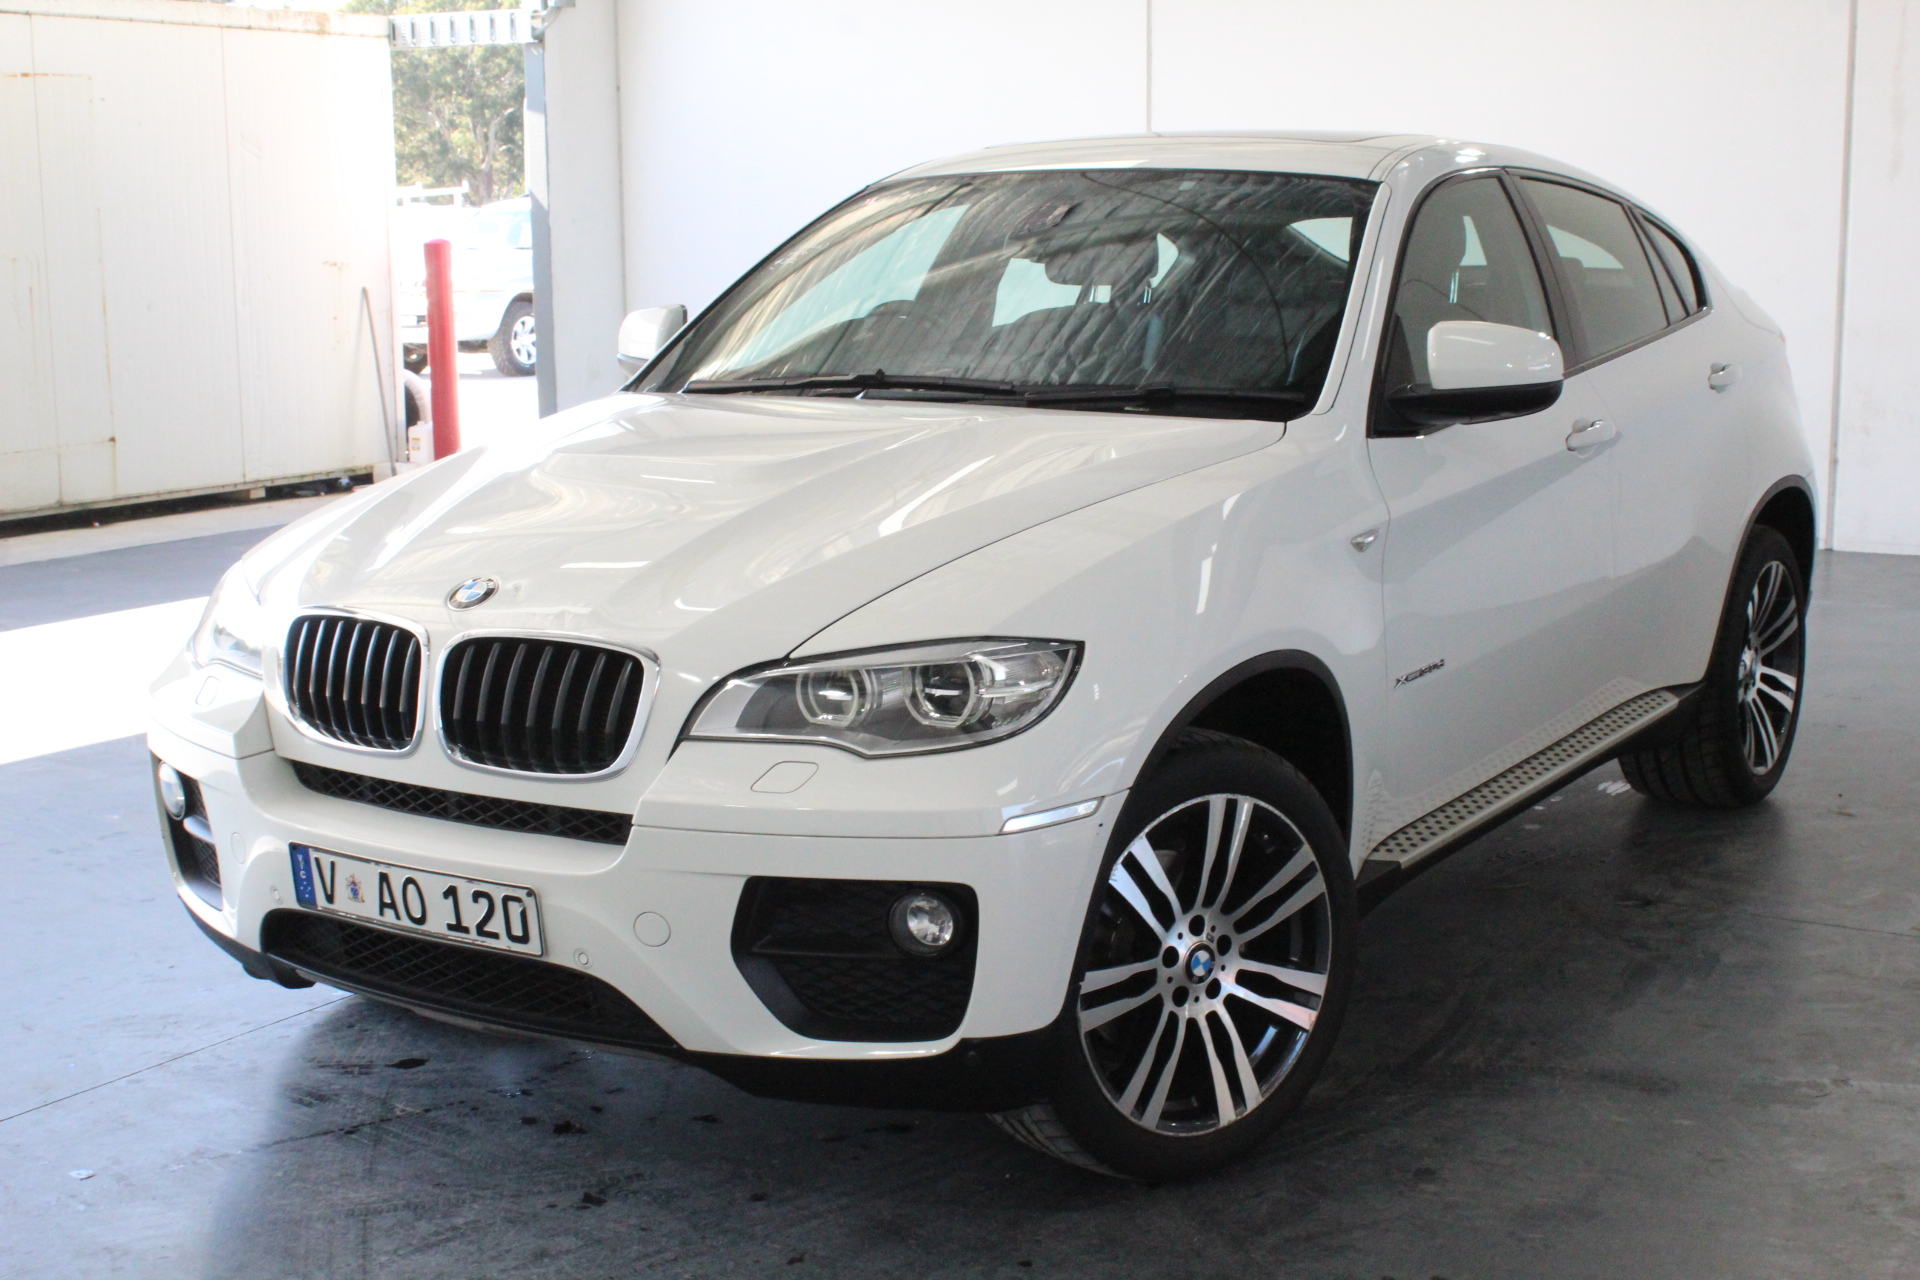 2012 BMW X6 xDrive 30d E71 LCI Turbo Diesel Automatic - 8 Speed Coupe